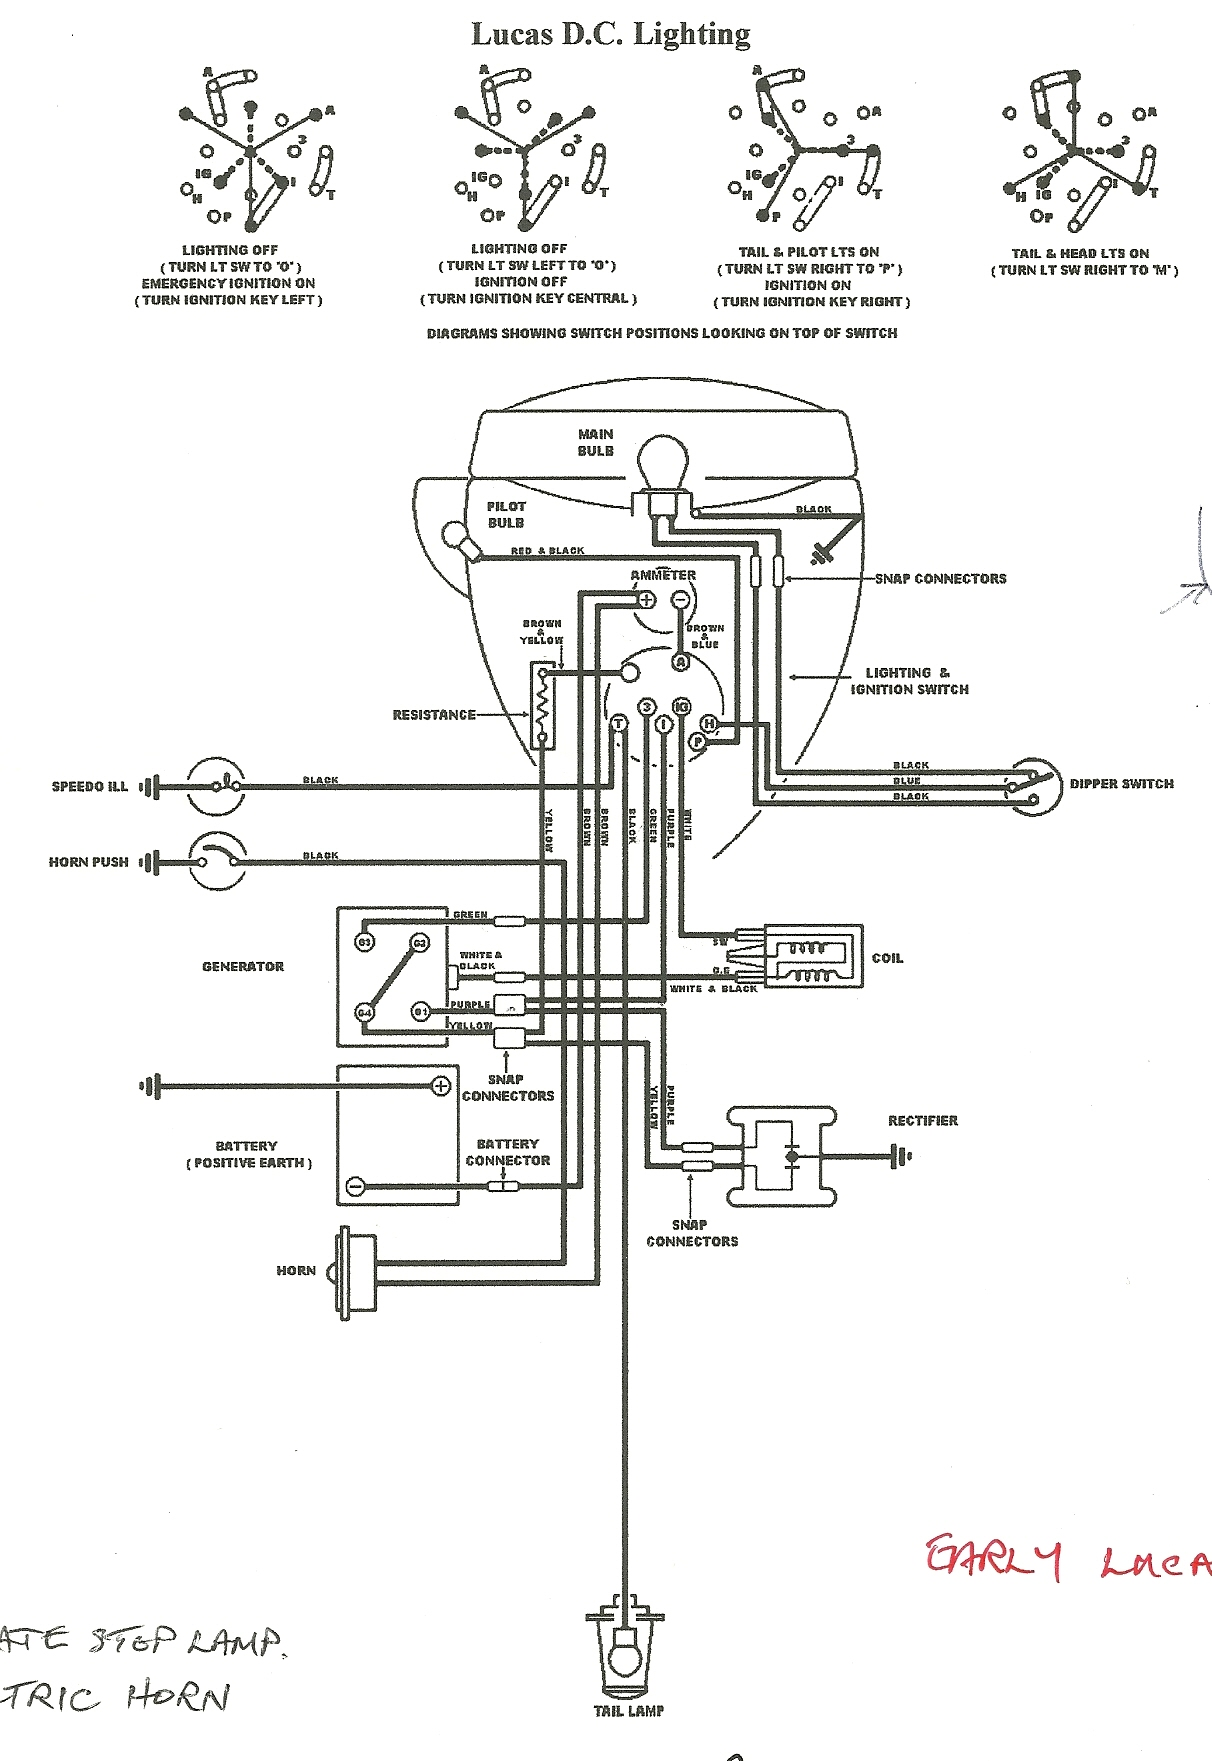 hight resolution of bantam d wiring diagram wiring diagram images wiring early lucas circuit modern rectifier and early lucas